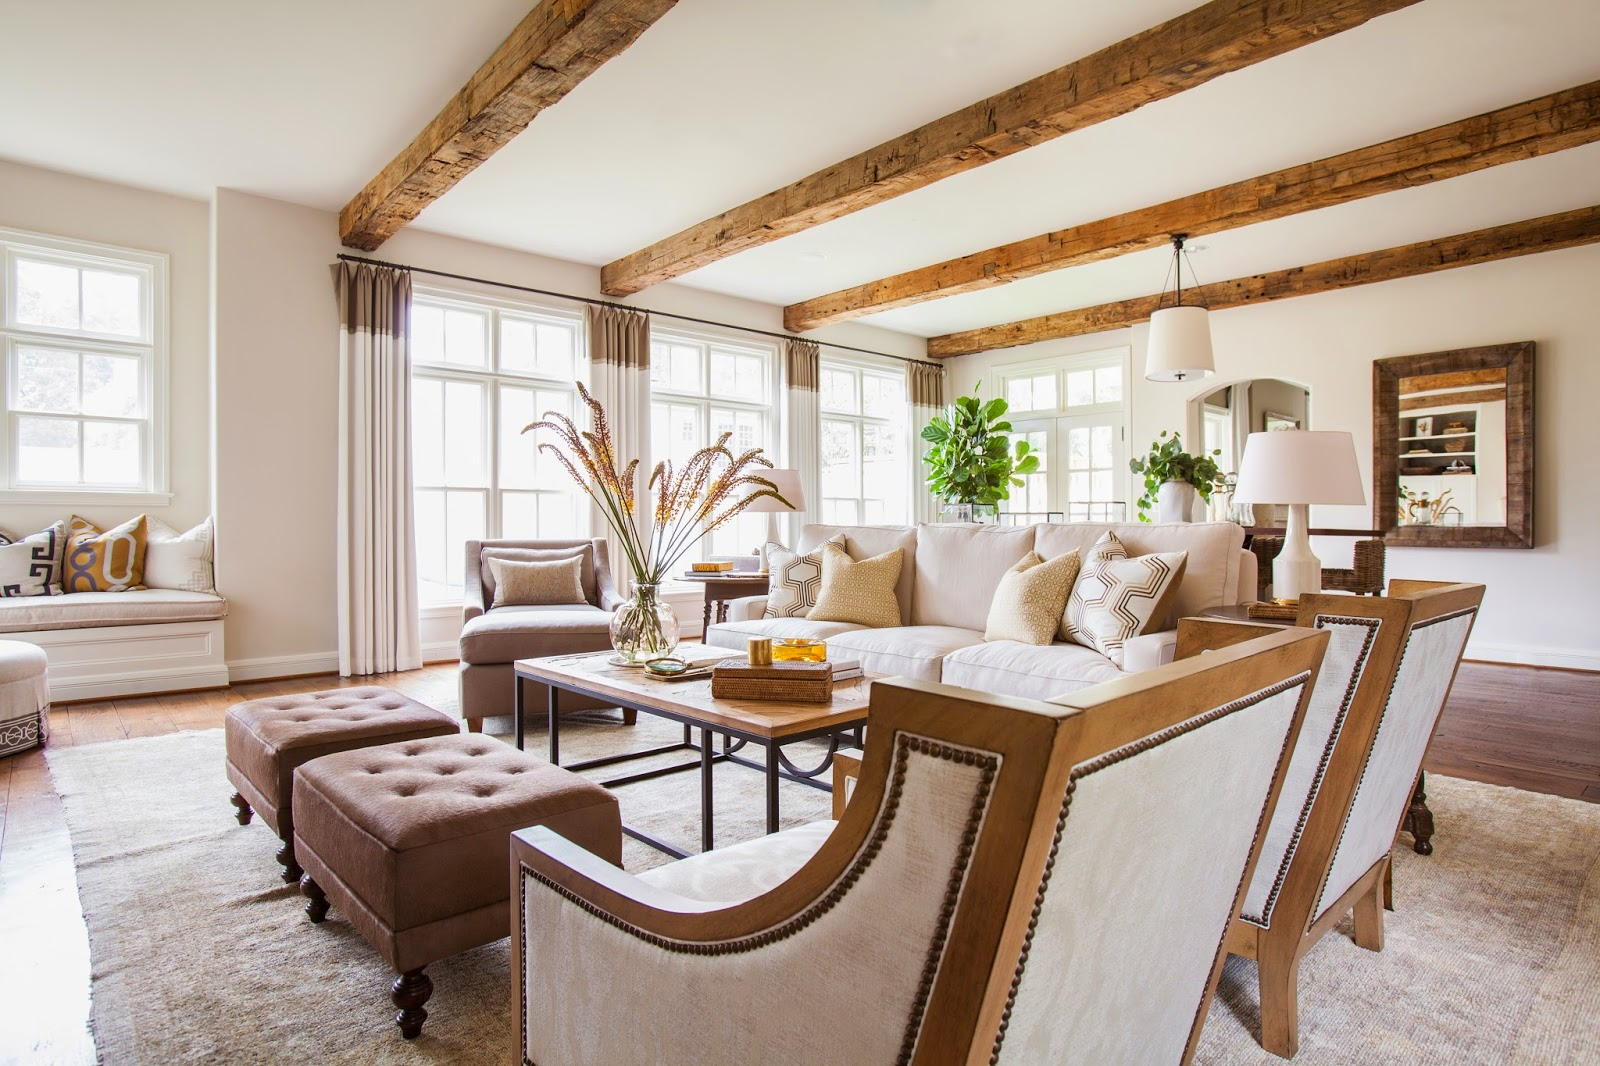 Marie flanigan interiors - Scale and proportion in interior design ...